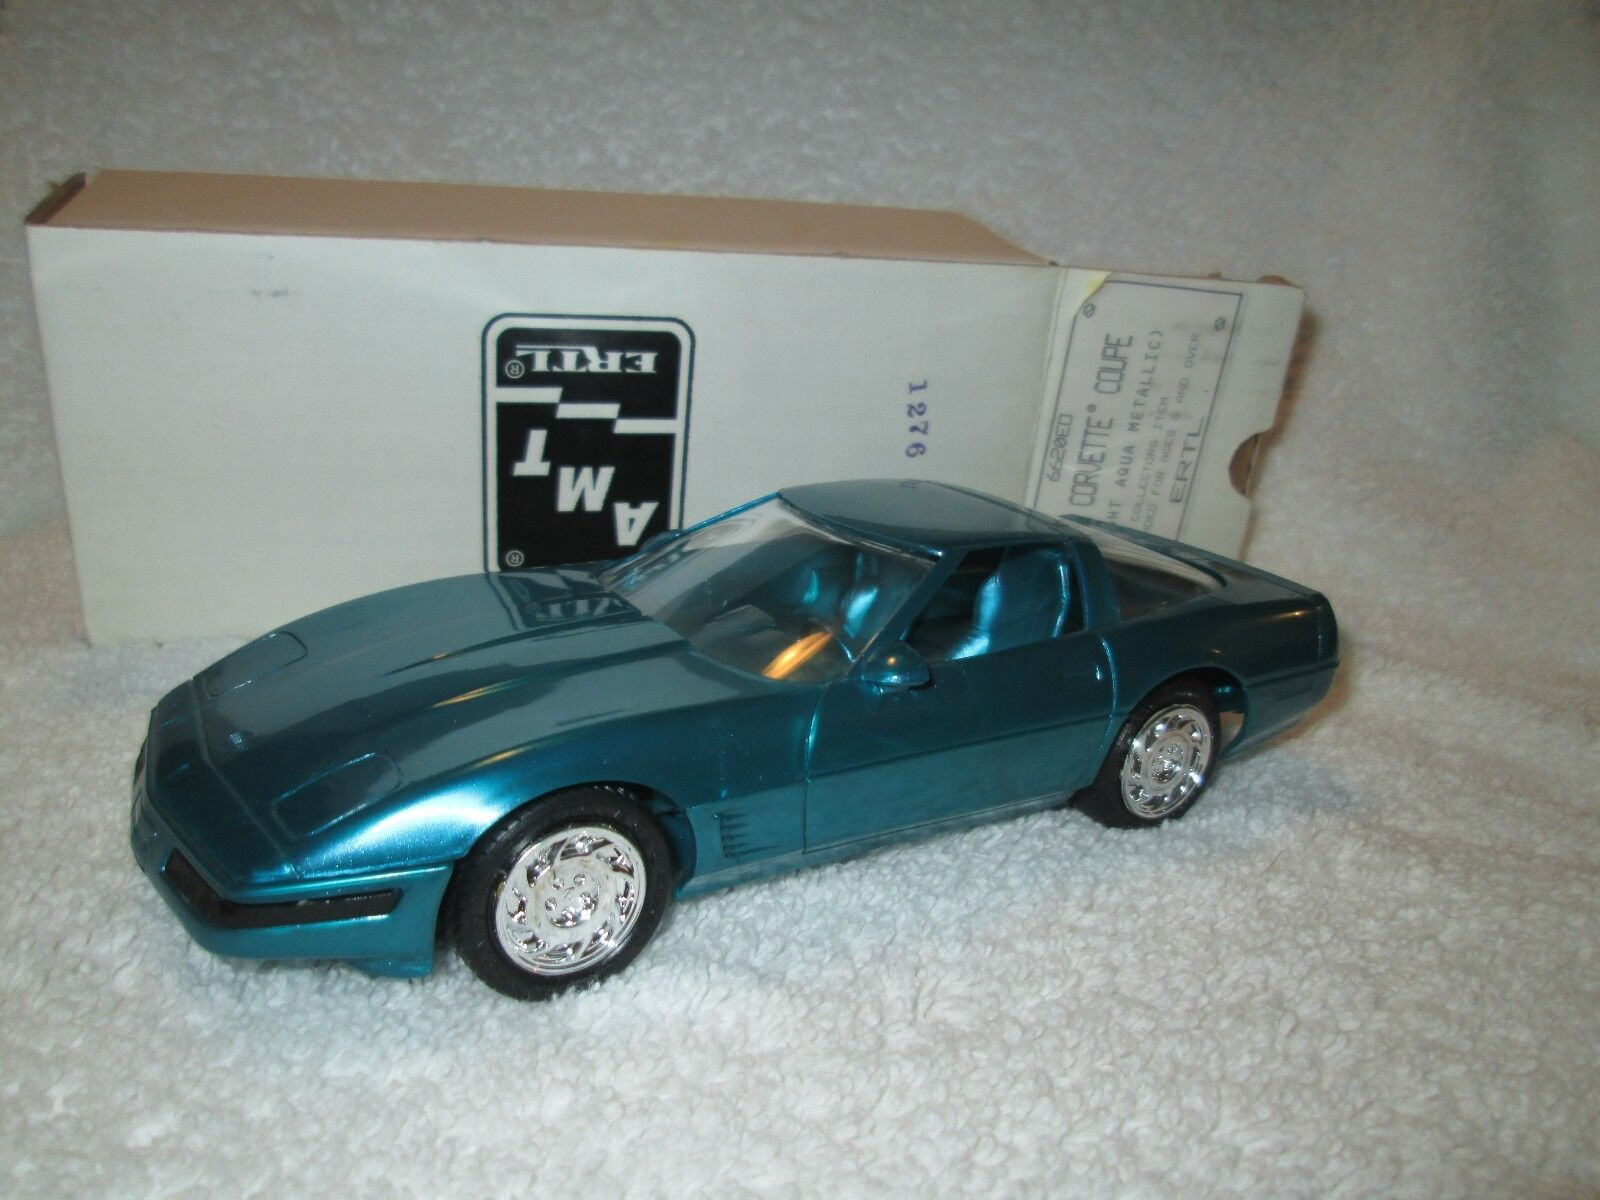 1996 Chevrolet Corvette Coupe Brillo Aqua Dealer Promo Loose Expositor Pieza